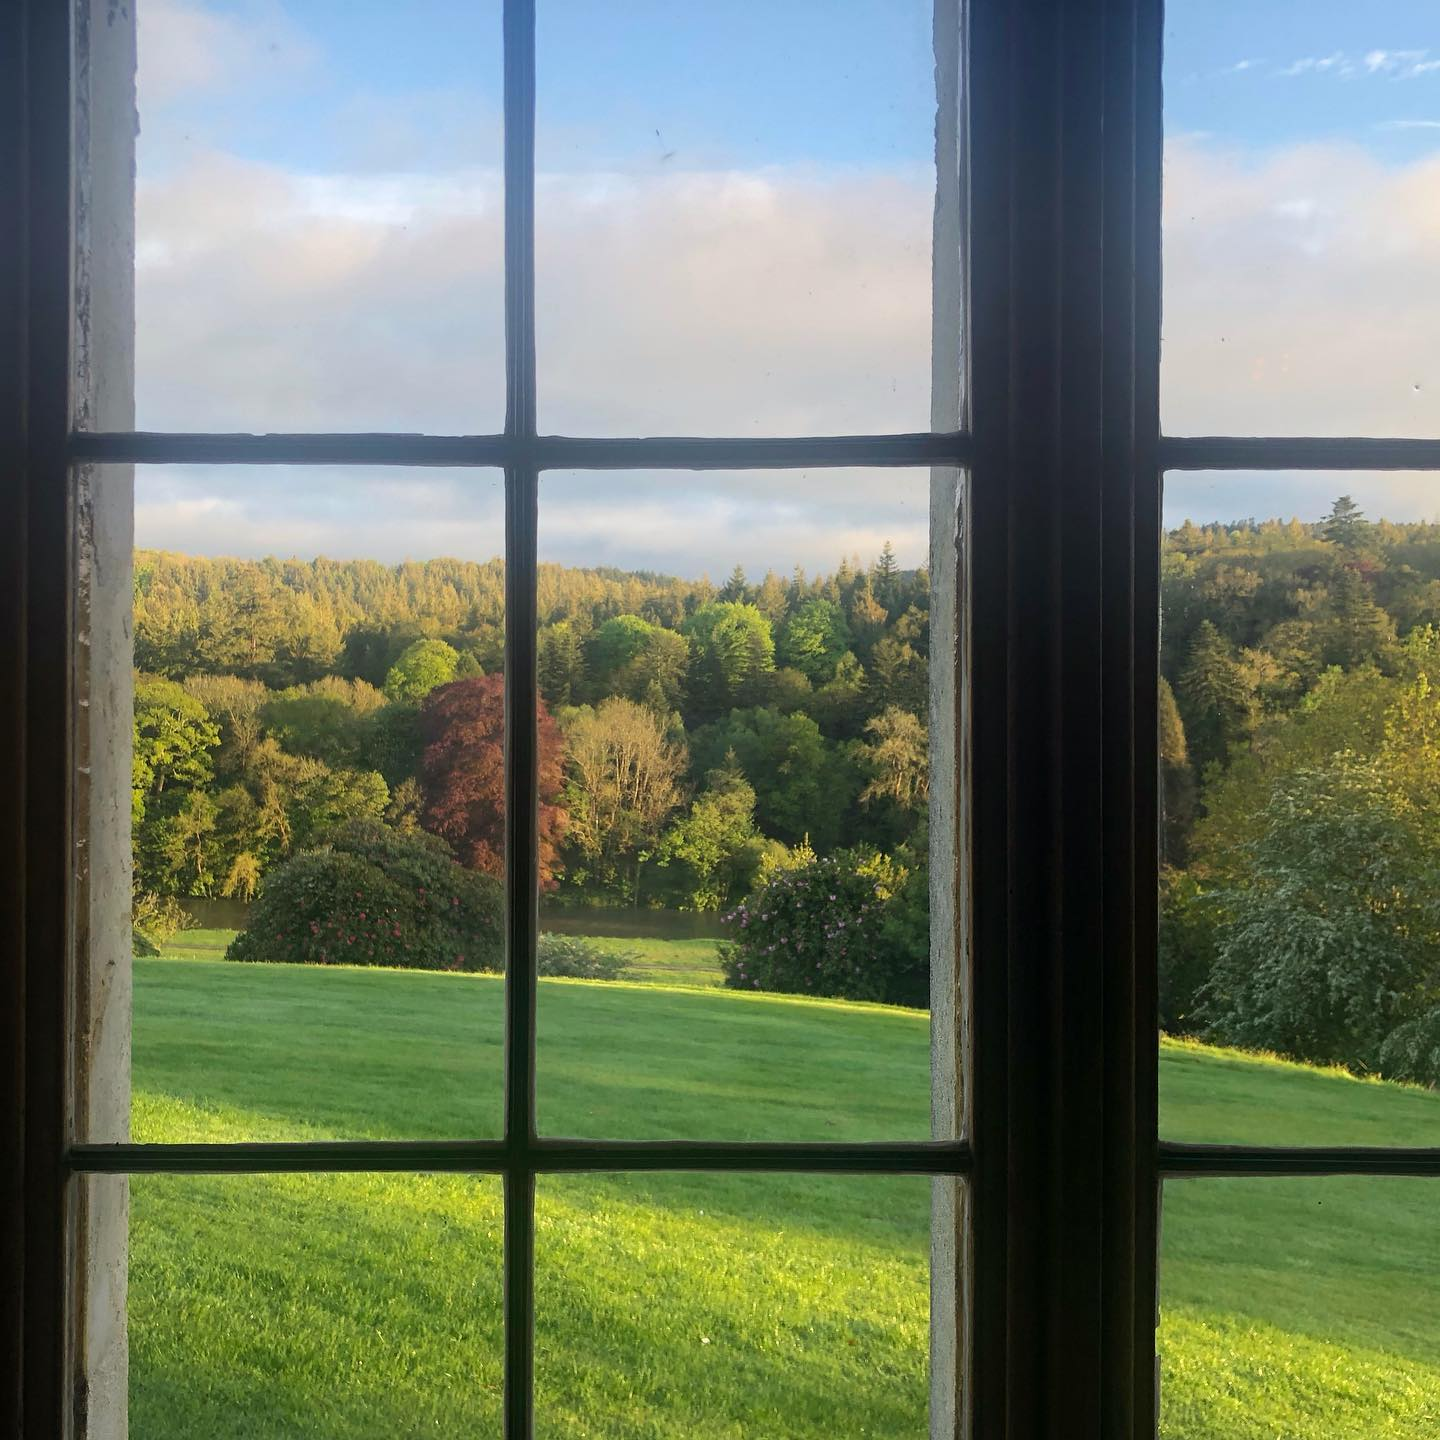 for one night only. endsleigh, humprey repton landscape. through the square(leaded) window. .#weddedwithnature, #humpreyrepton, #dartmoor, #landscape, #throughthelookingglass, #endsleigh, #reptonlandscape, #endoftheday